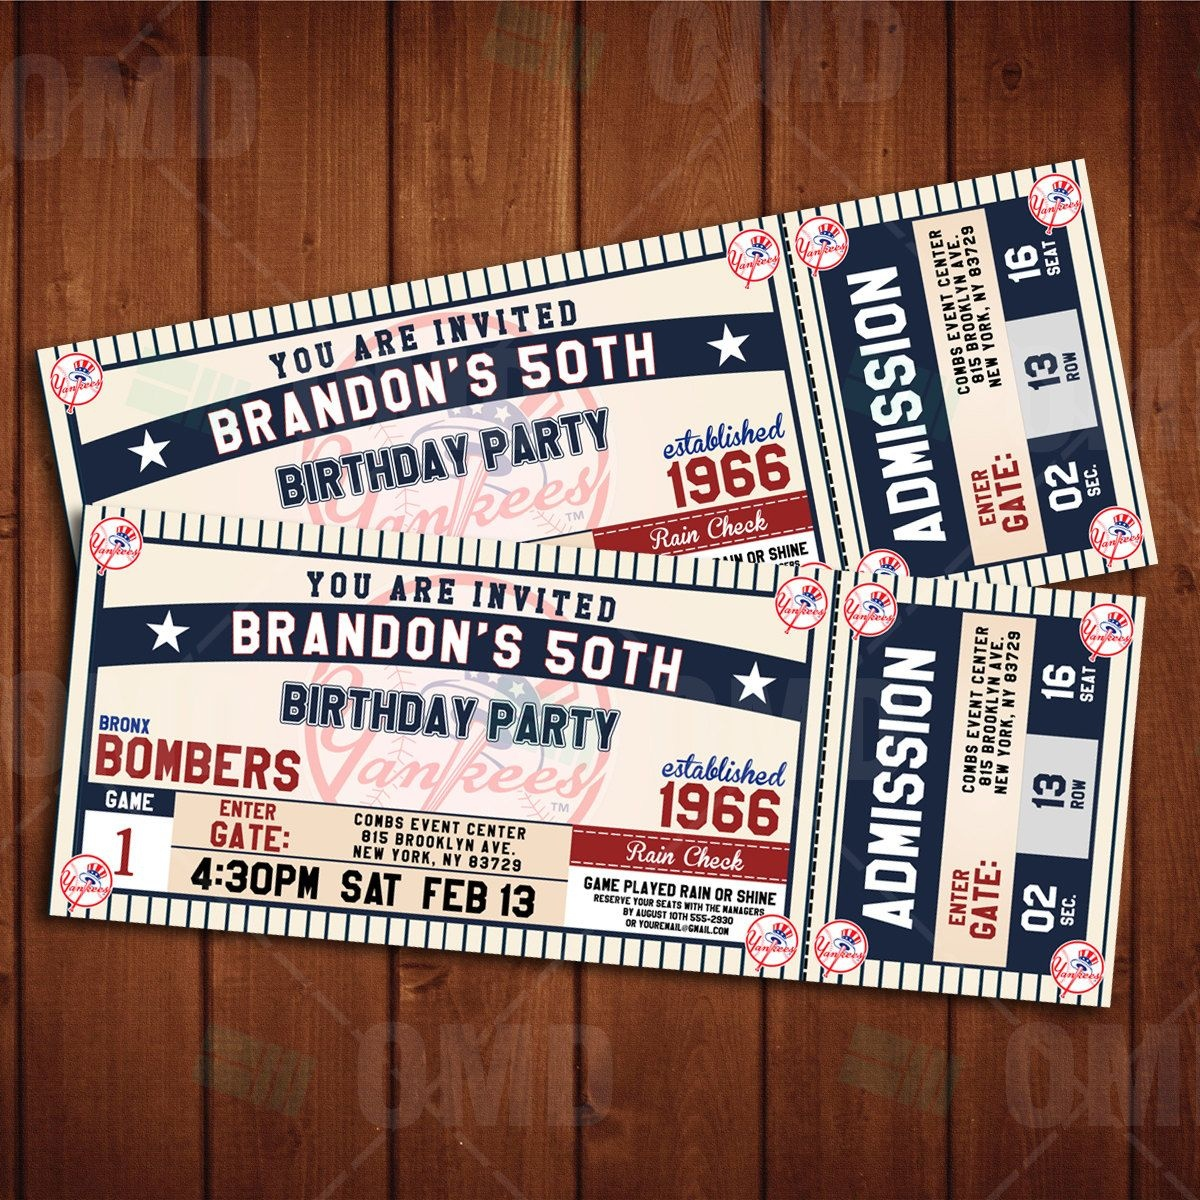 New York Yankees Classic Ticket Sports Party Invitations In 2019 - Free Printable Baseball Ticket Birthday Invitations